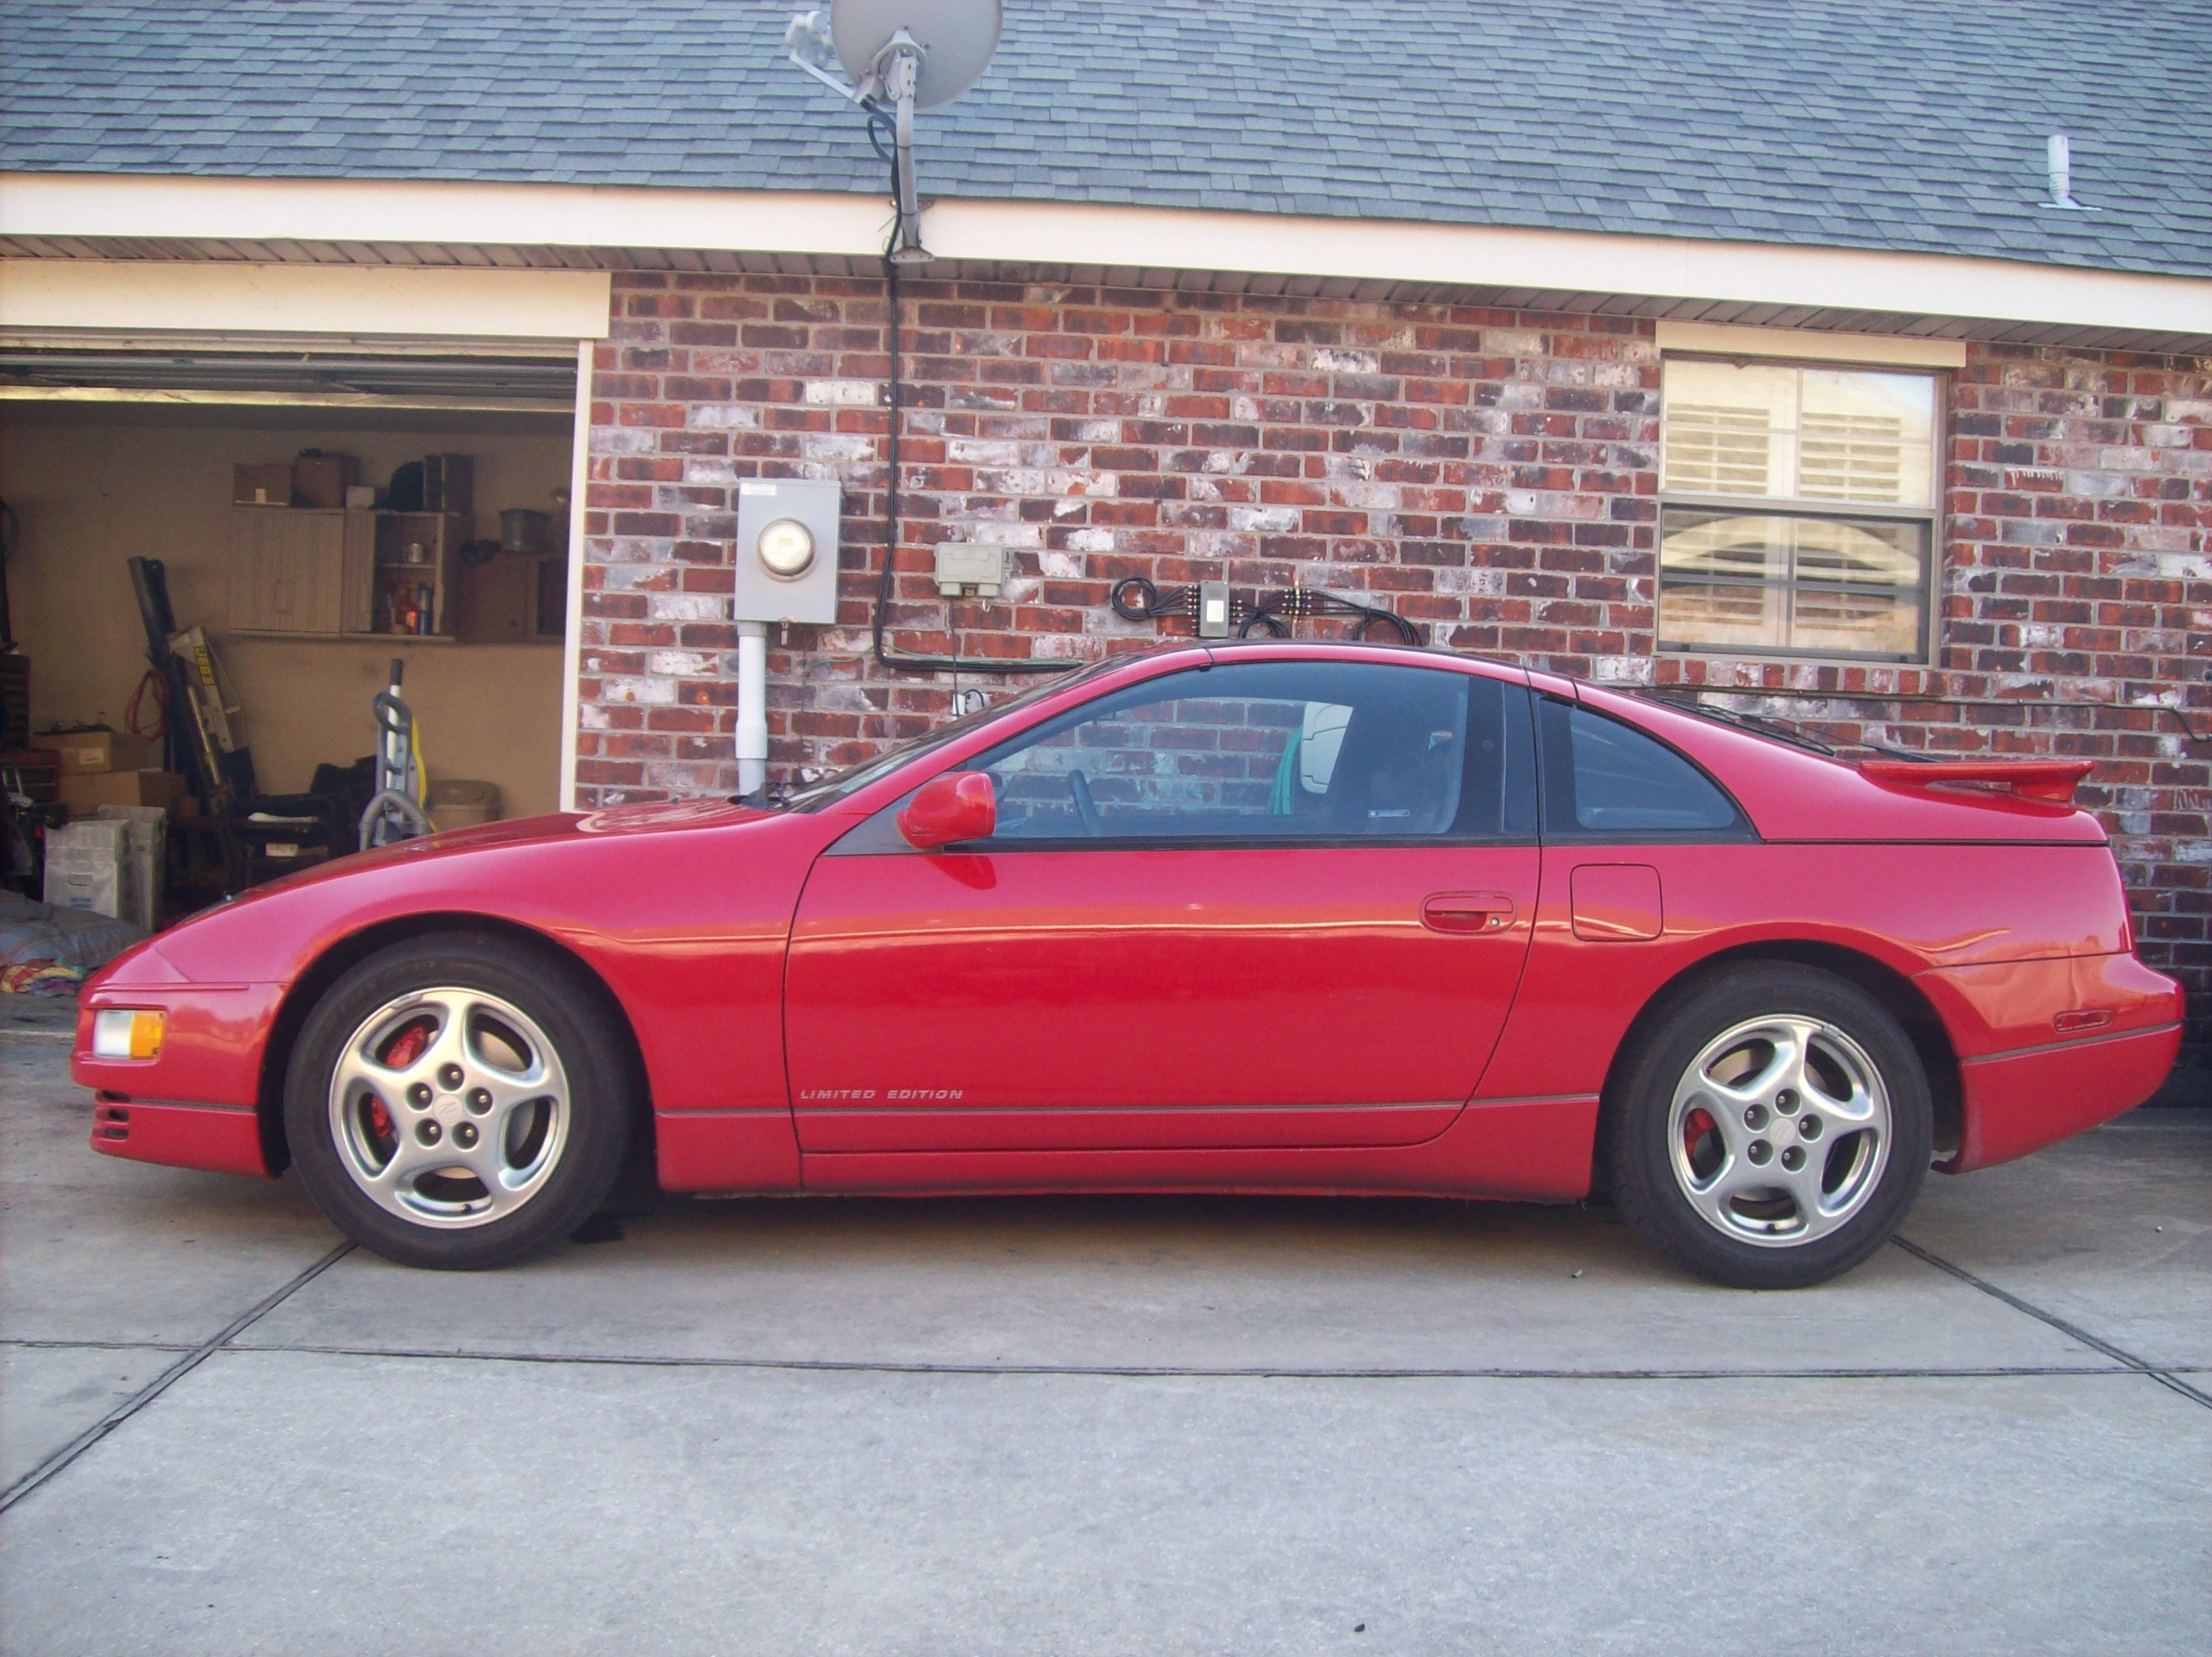 I Purchased This 96 TTZ In April 09 With A Blown Engine And Turbos.  Installed A JDM Replacement Engine And Built It To 96 USDM Specs.